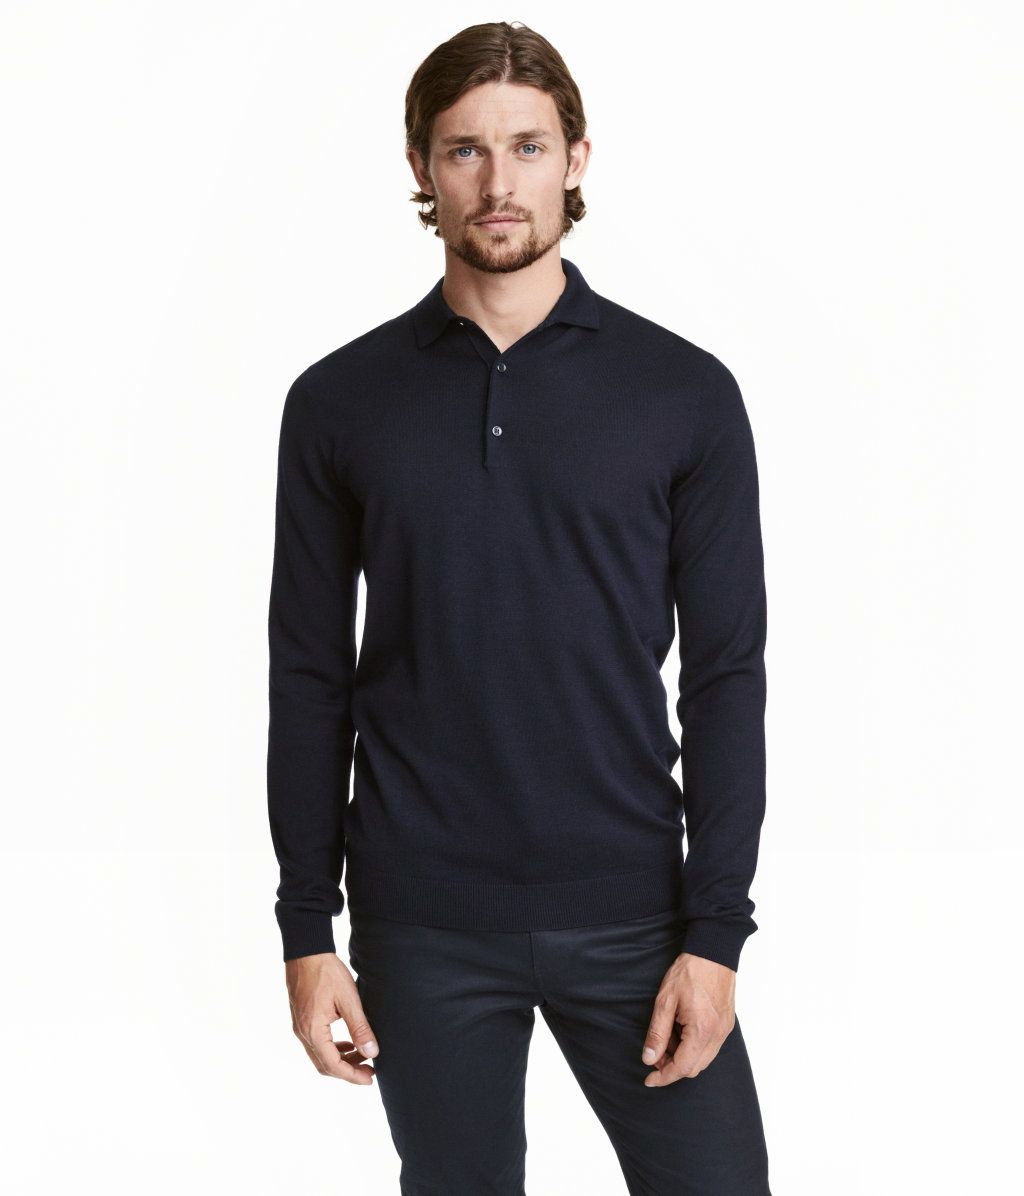 e9cfed4c Men's Polo Shirt Dark Blue L - Merona | Products | Polo outfit, Polo, Polo  t shirts